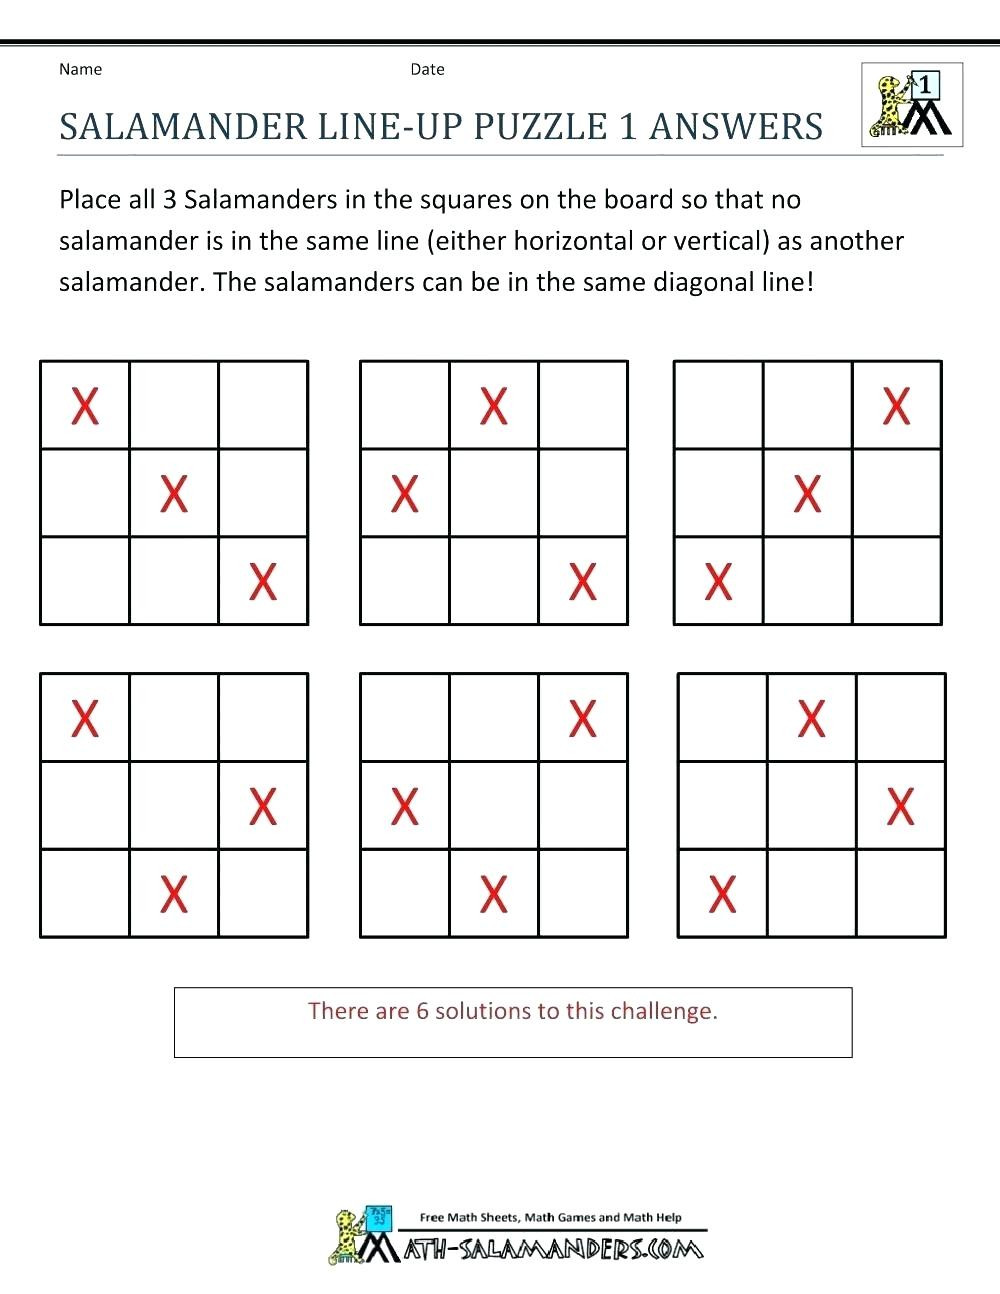 Brain Teasers Printable Worksheets Printable Brain Teasers for Kids Drawing Puzzle